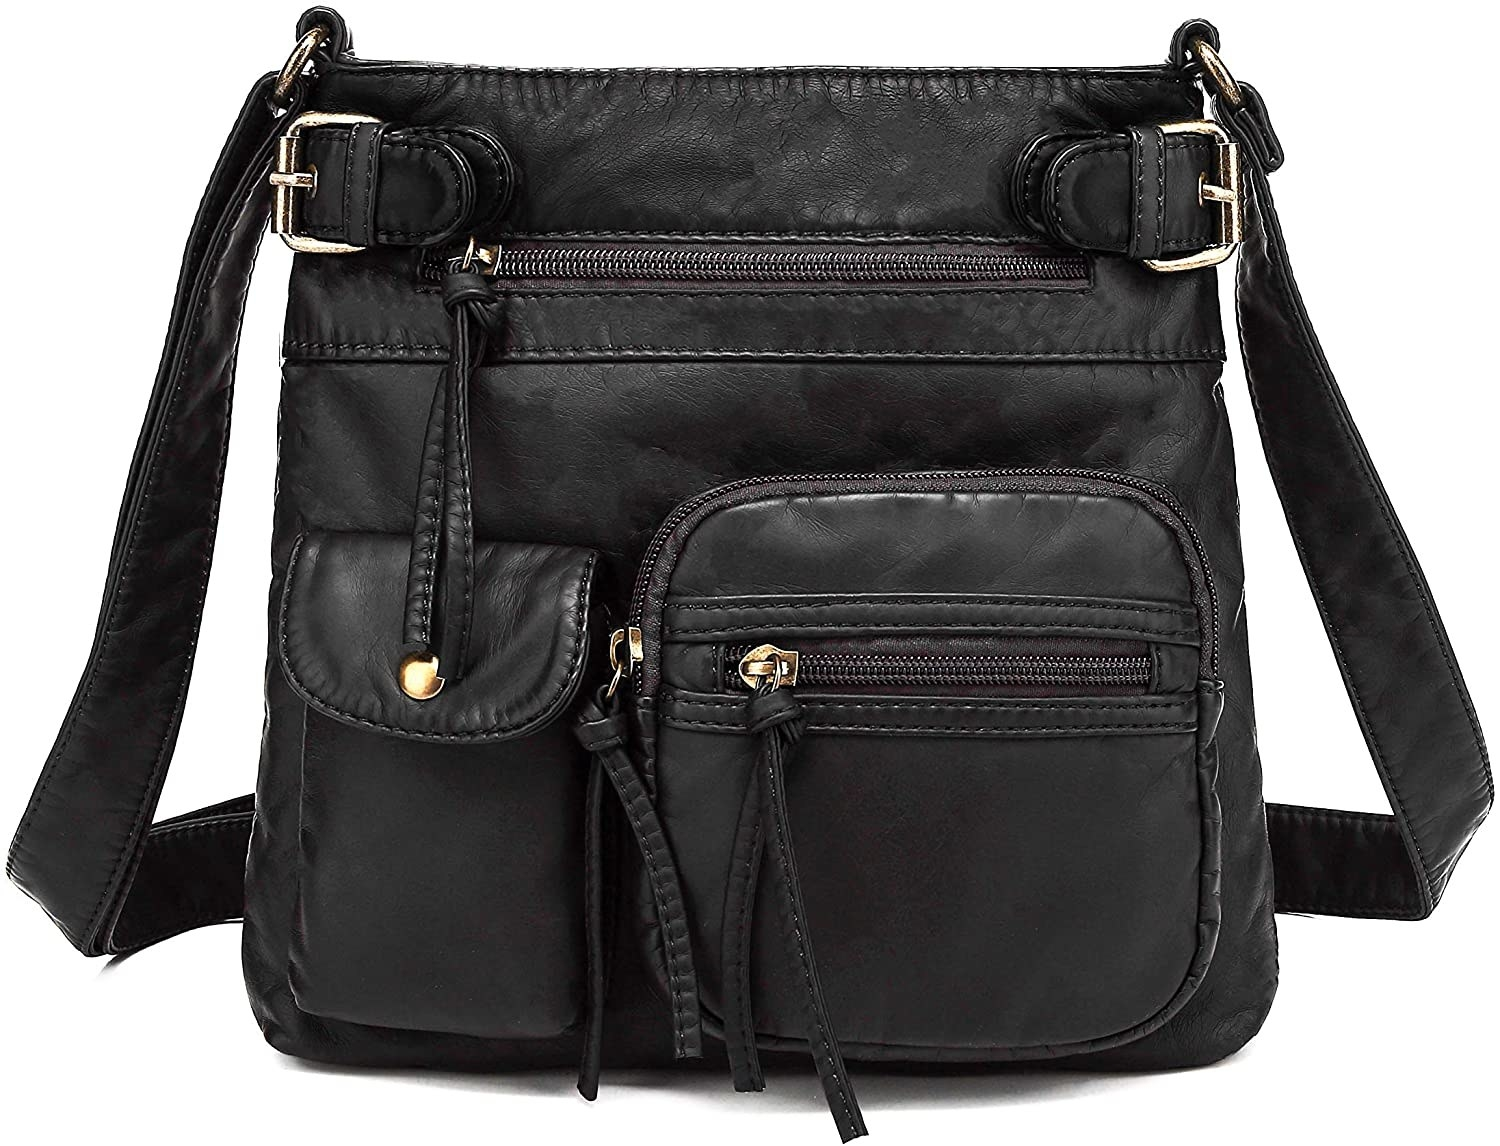 New Women/'s Stylish Three Compartment Messenger//Cross Body Bag With Front Pocket